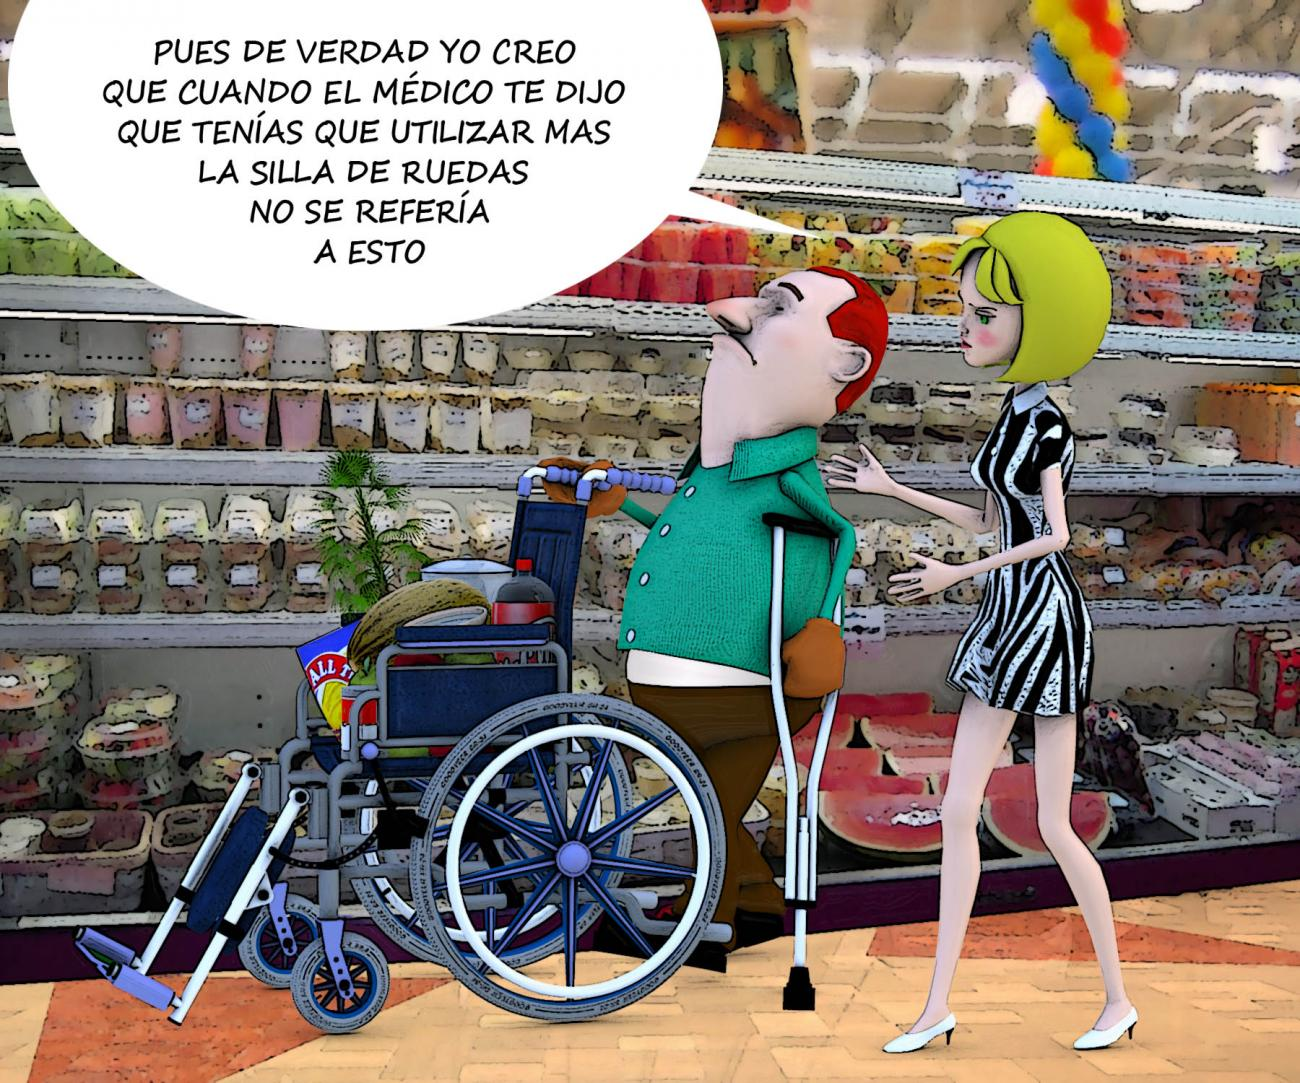 Chiste 4 by Josel007